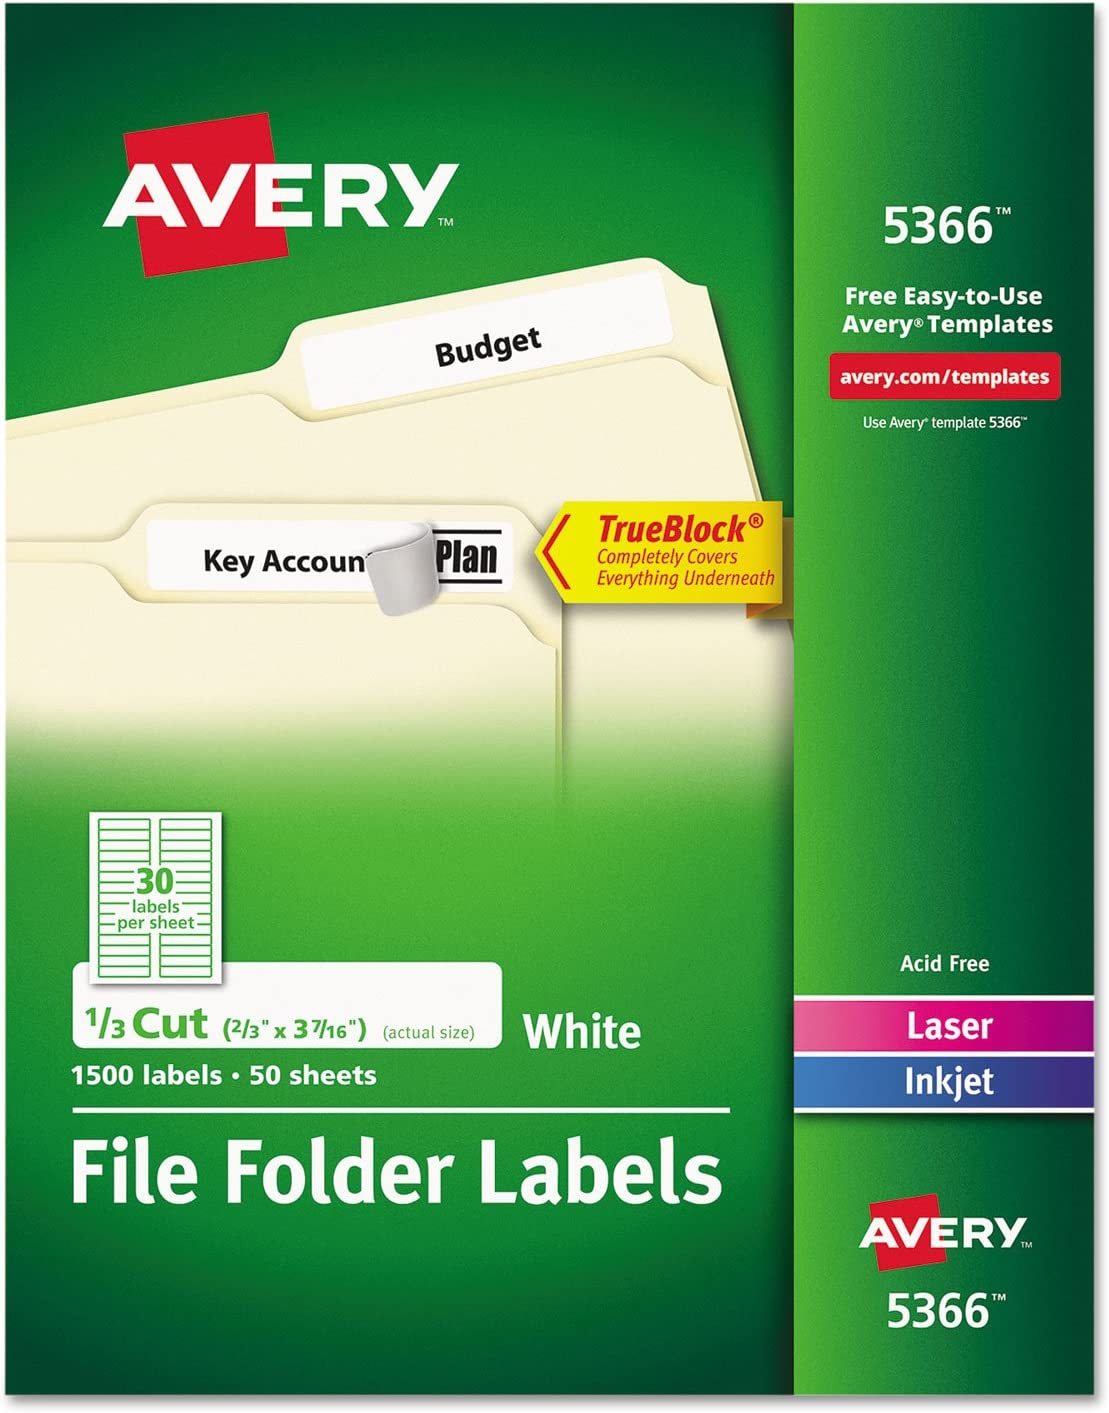 Avery File Folder Labels for Laser and Ink Jet Printers with TrueBlock Technology, 3.4375 x .66 inches, White, Box of 1500 (5366) : Office Products